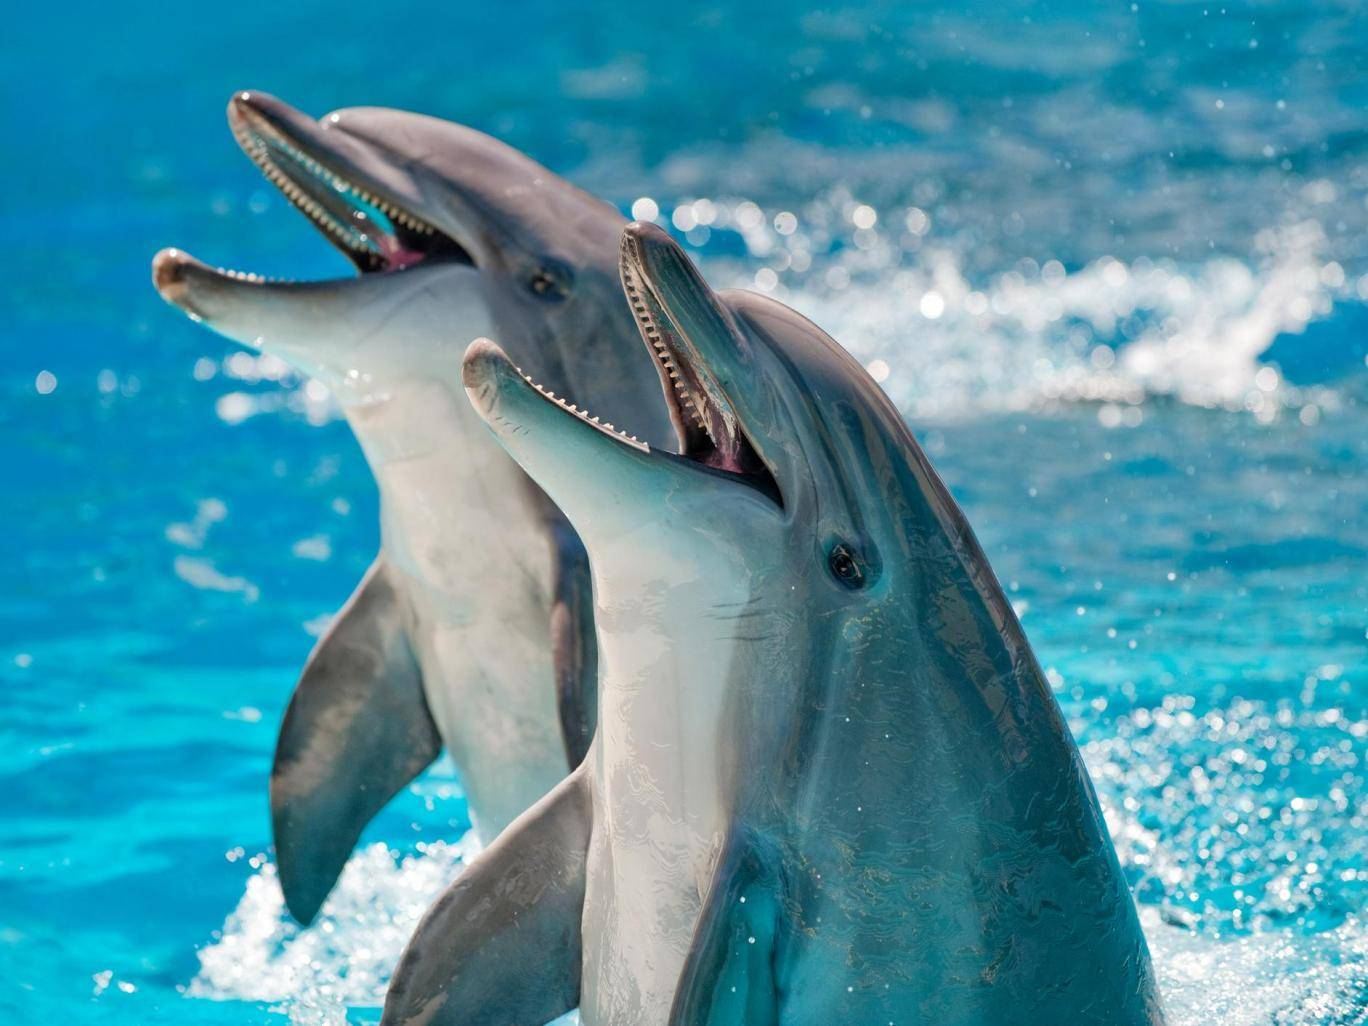 Scientists were able to listen in on the dolphin population of the Gulf of Mexico using underwater sensors Getty Images